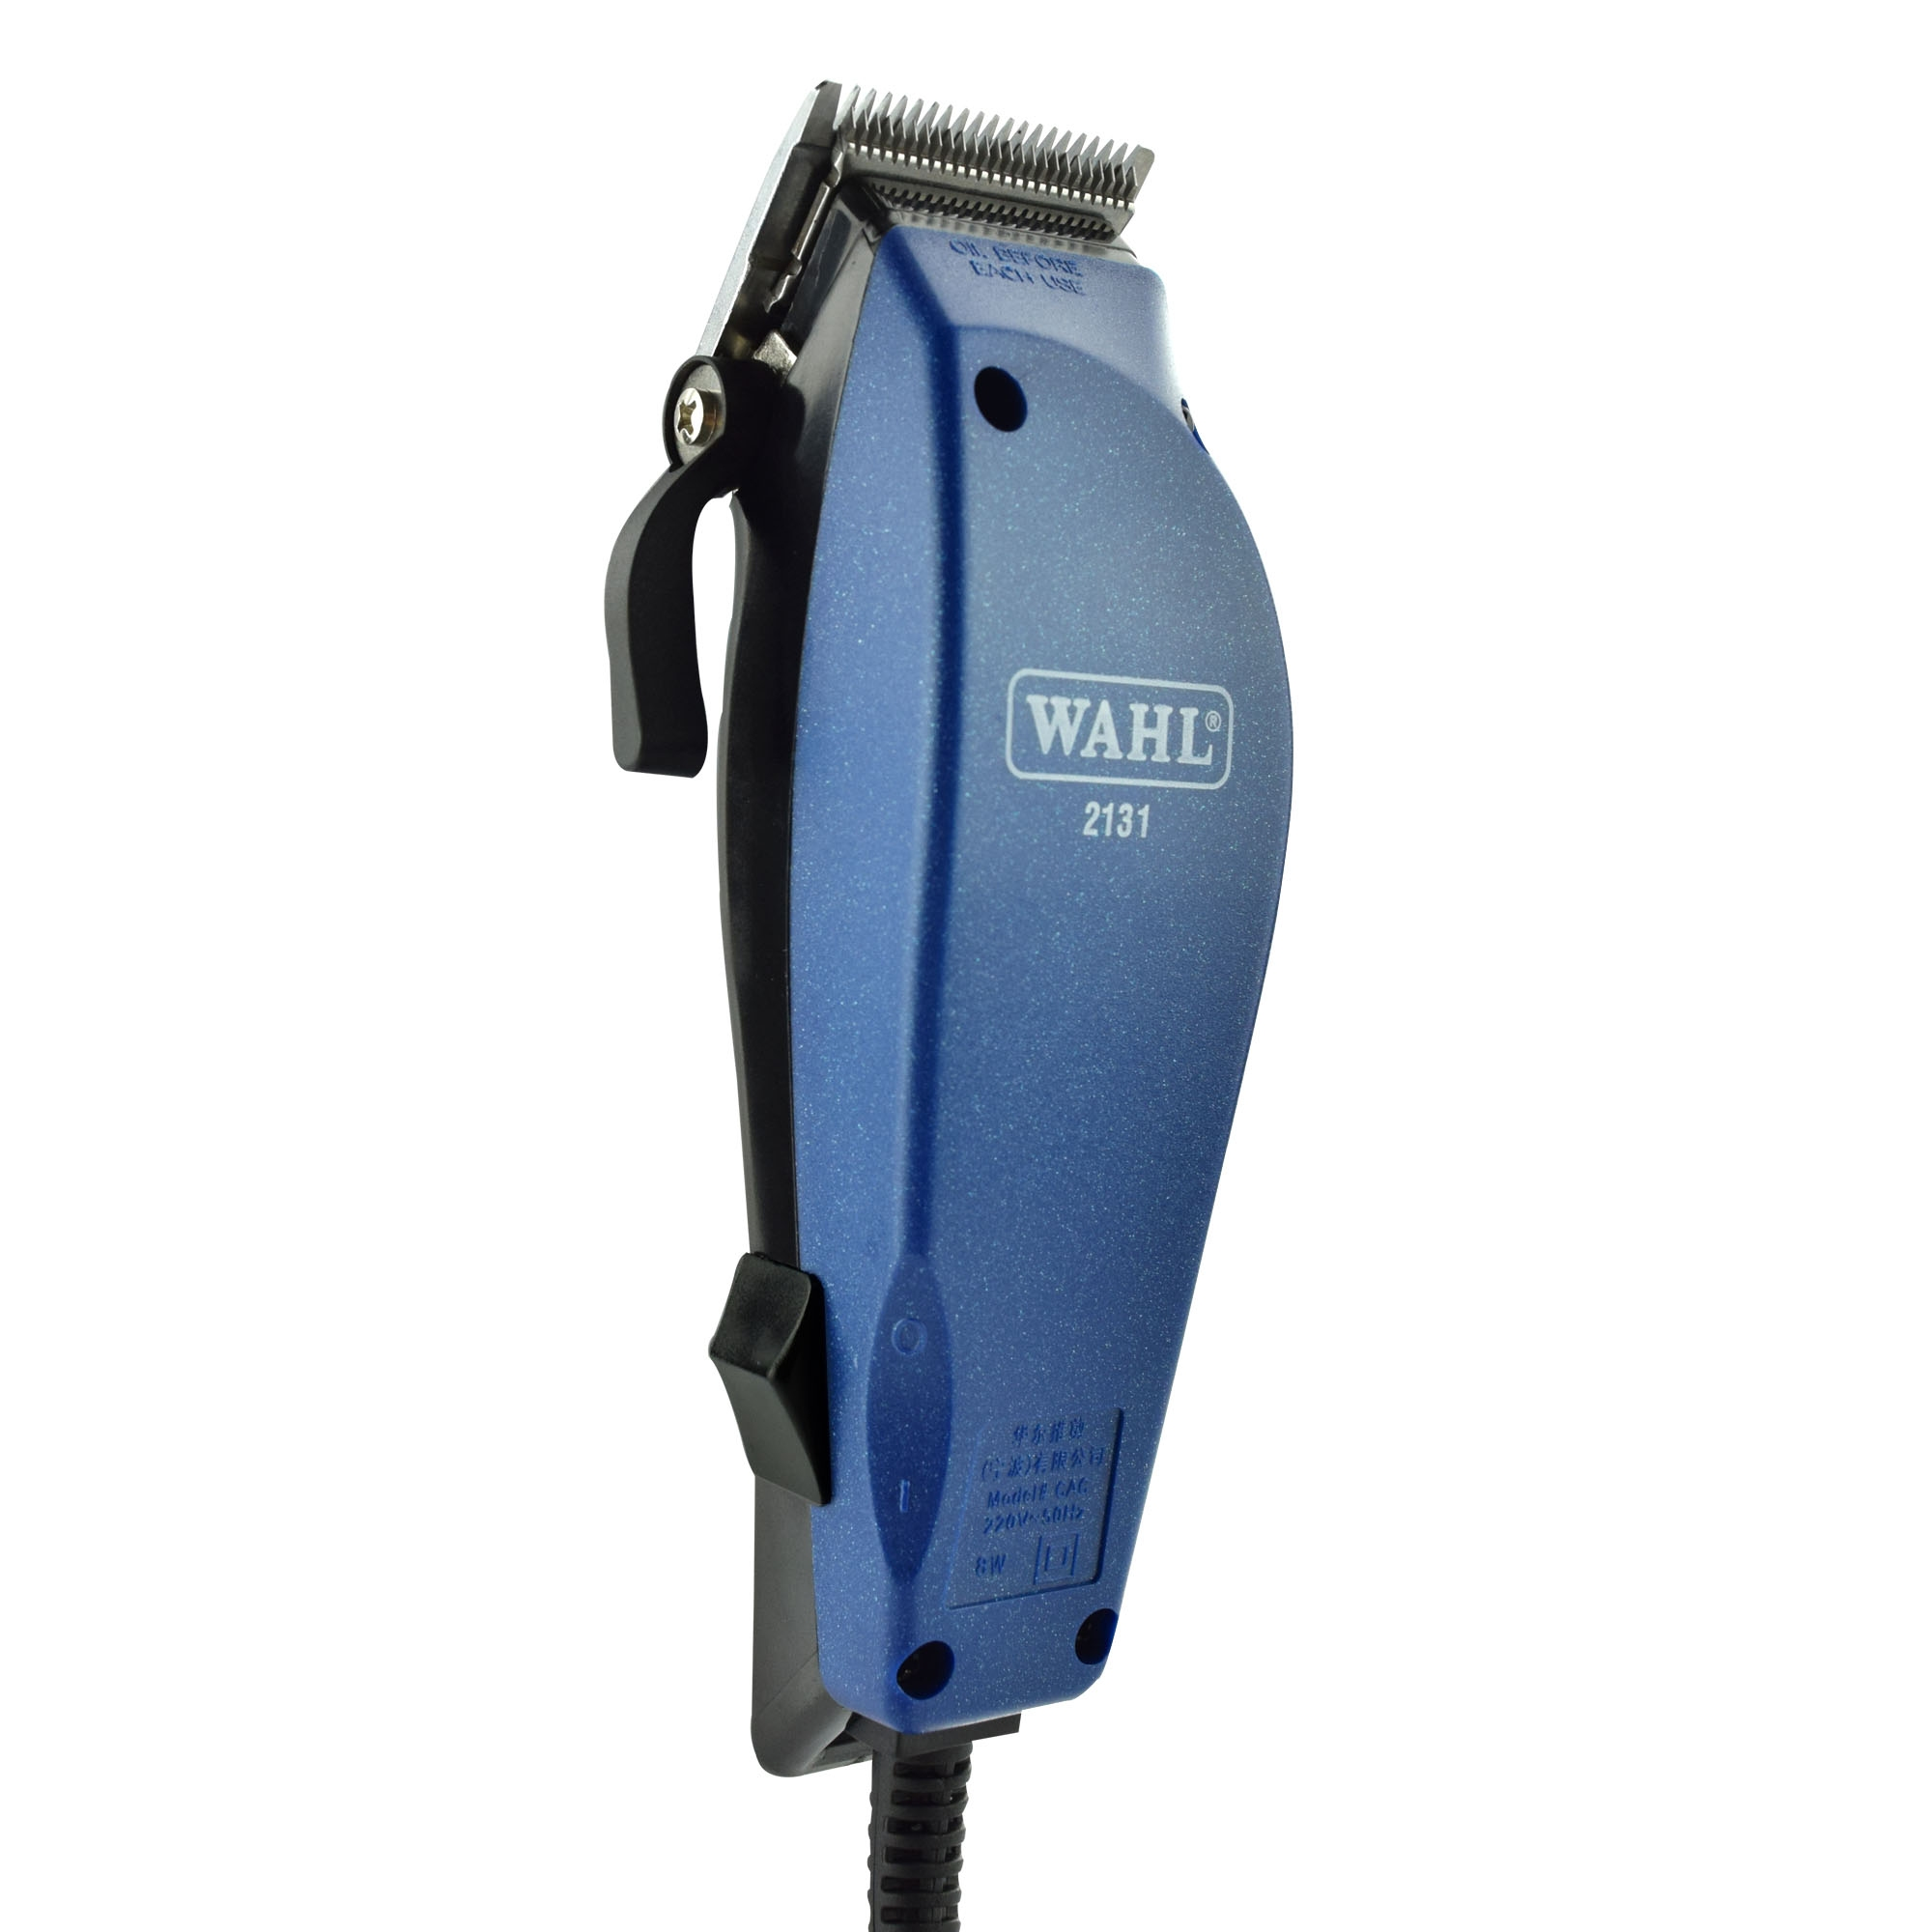 Wahl 2131 Hair Clipper Corded Use A End 3 25 2020 2 51 Pm